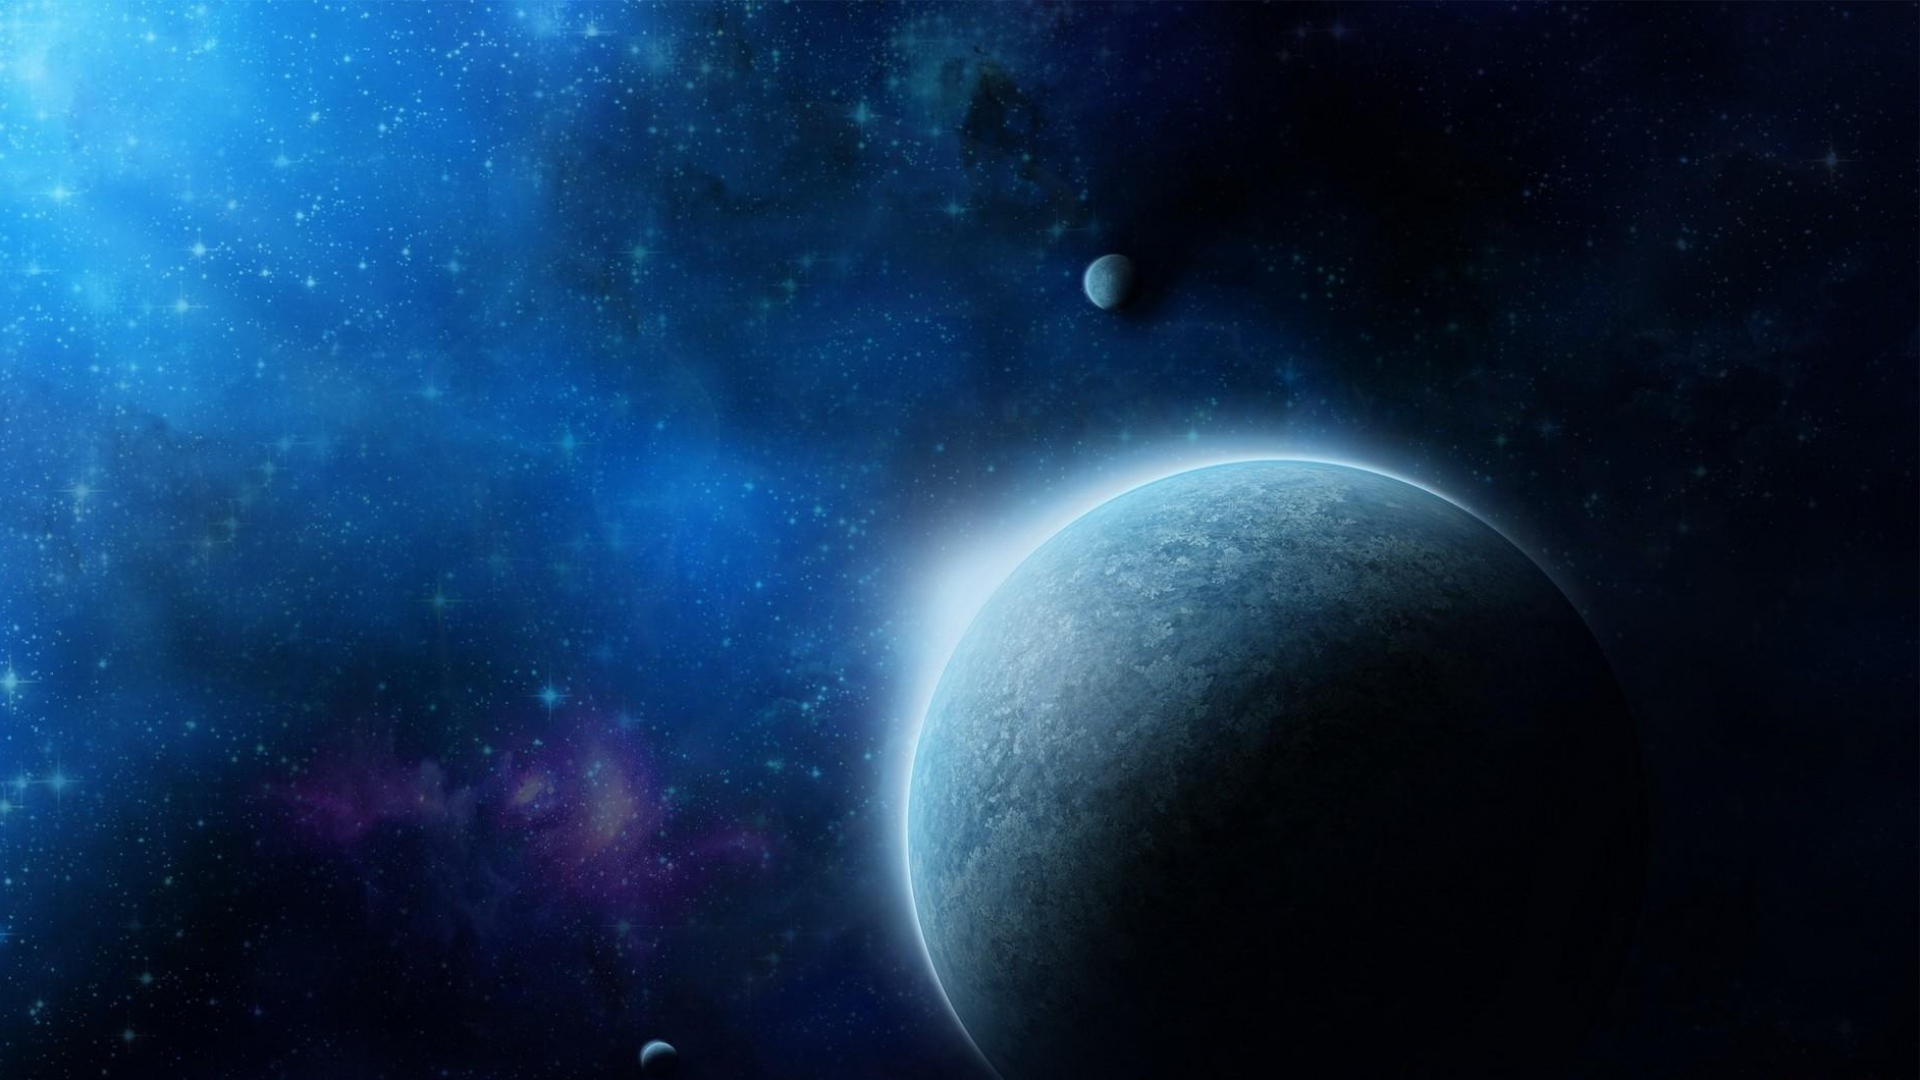 Download Wallpaper 1920x1080 Universe Planets Galaxies Stars